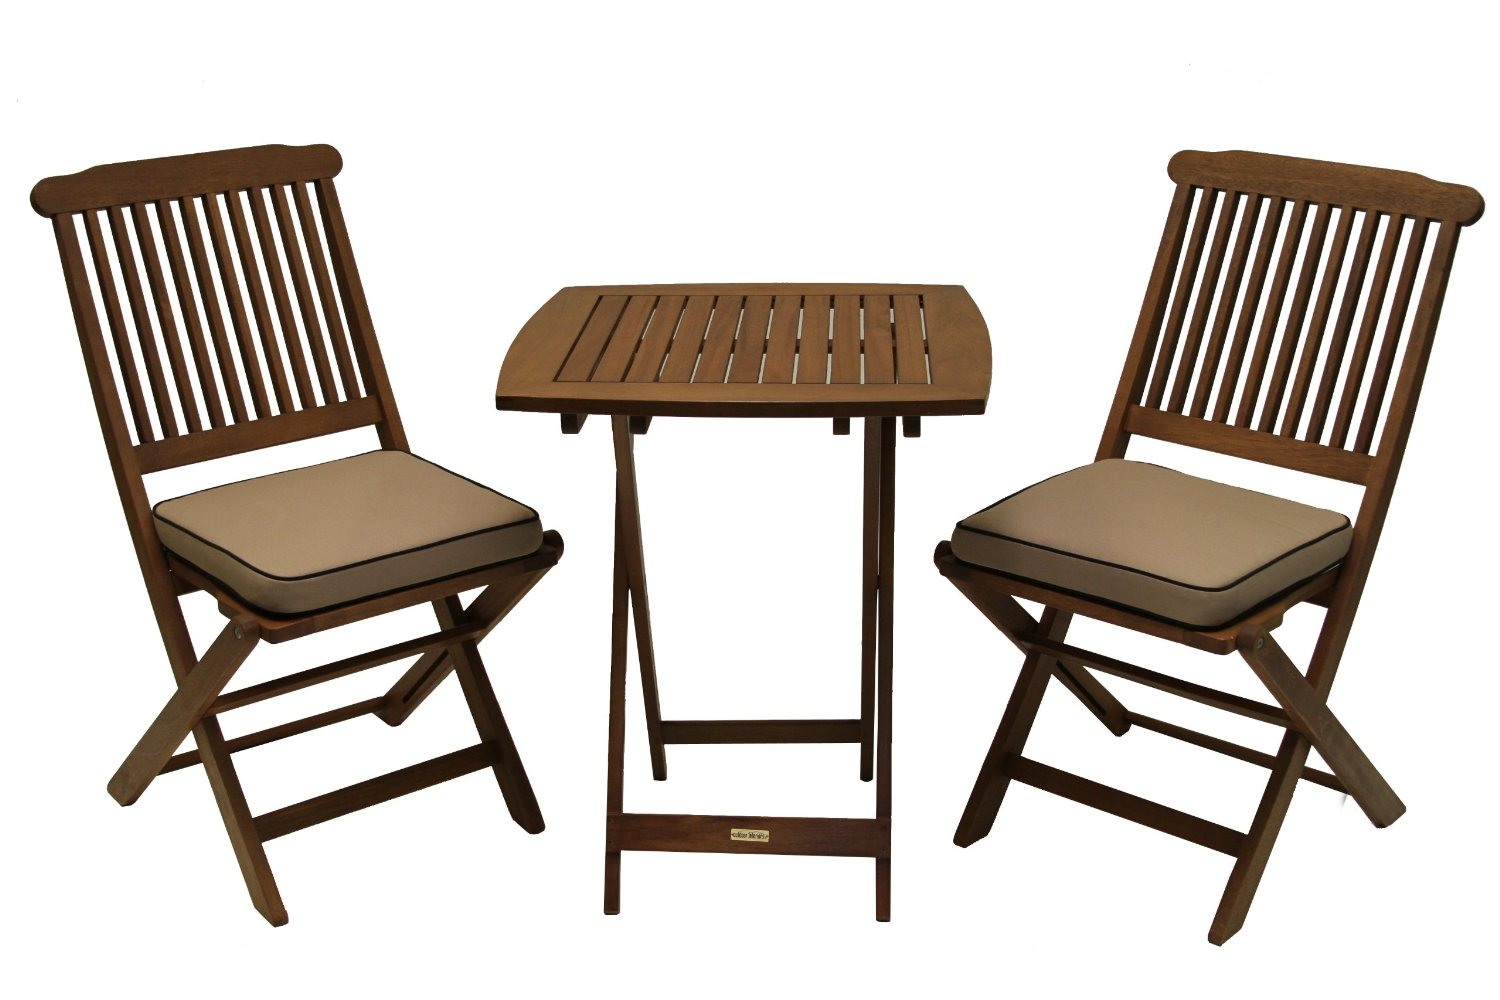 outdoor interiors eucalyptus 3 piece square bistro outdoor furniture set includes cushions - Garden Furniture 3 Piece